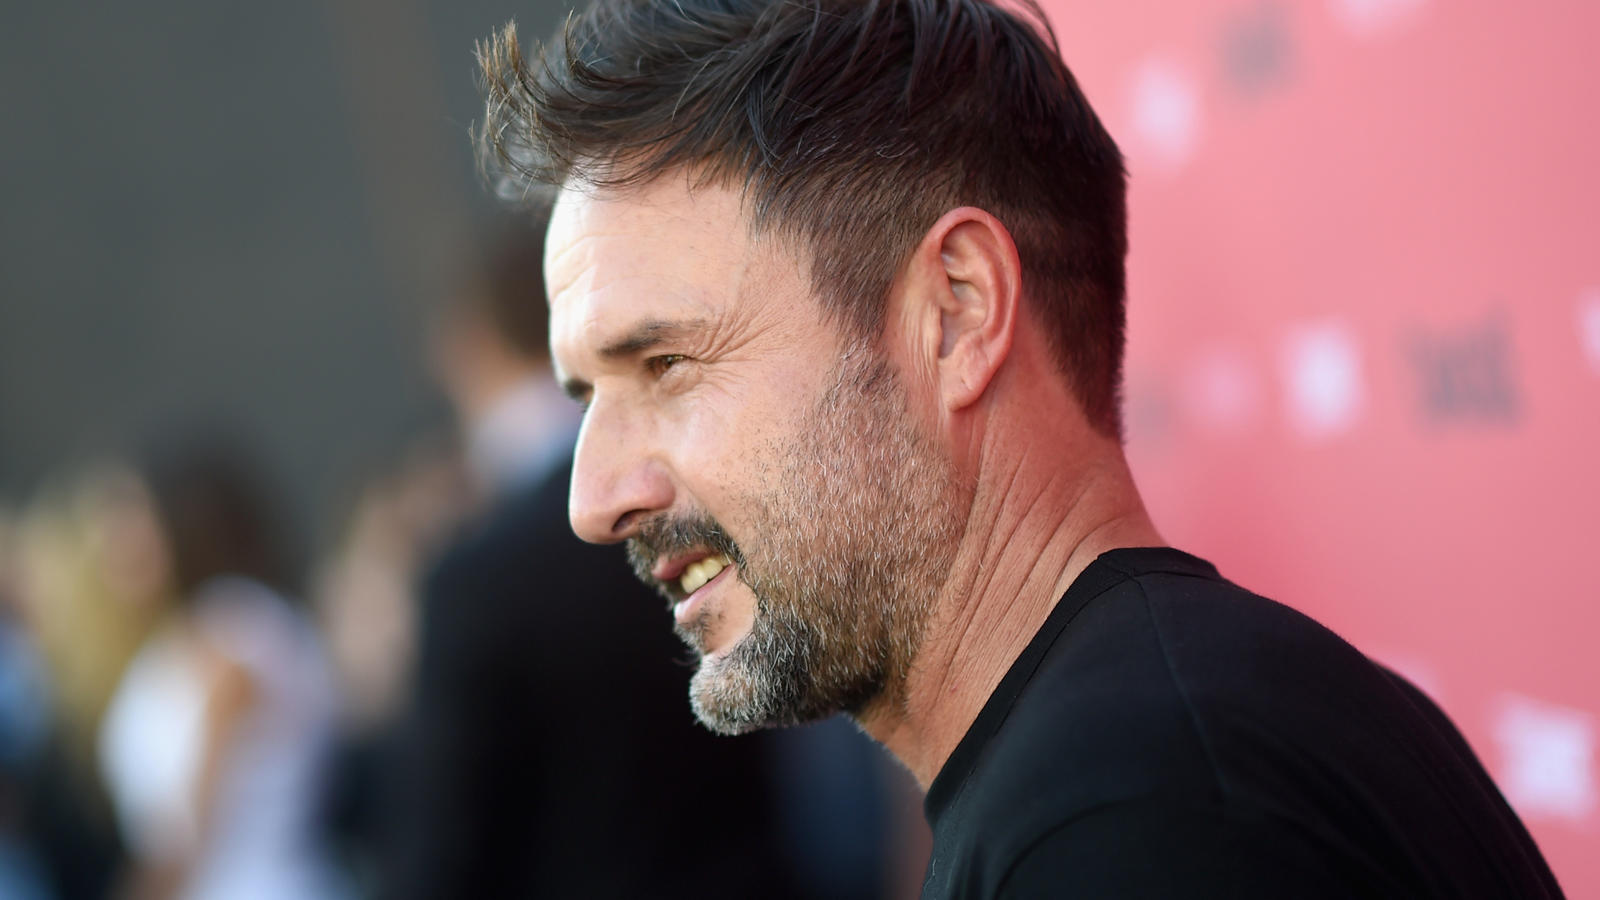 David Arquette in Los Angeles